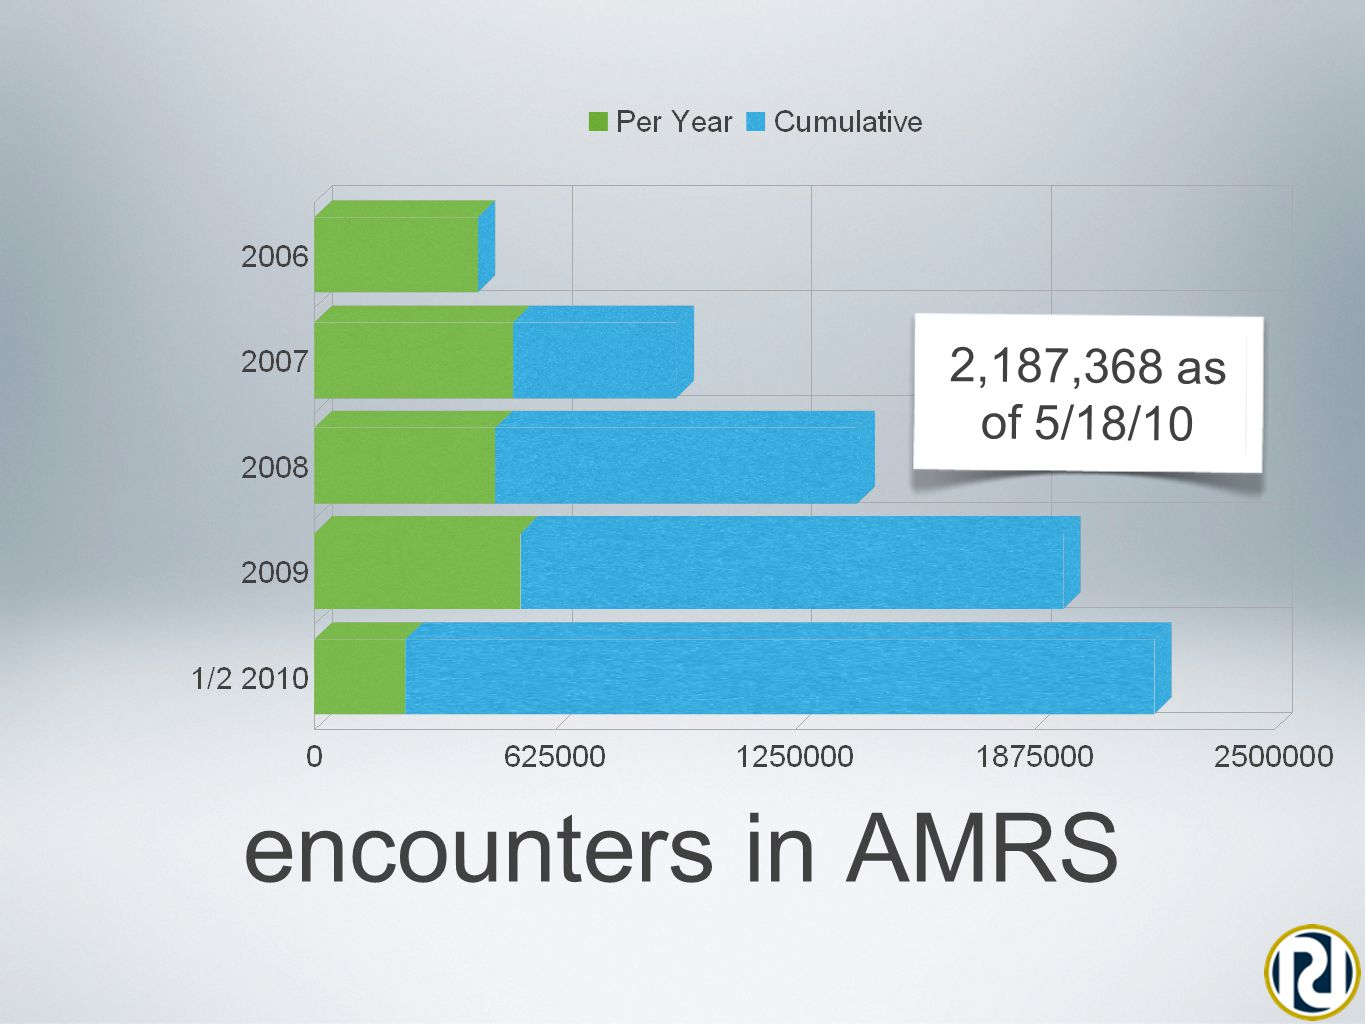 encounters in AMRS 2,187,368 as of 5/18/10